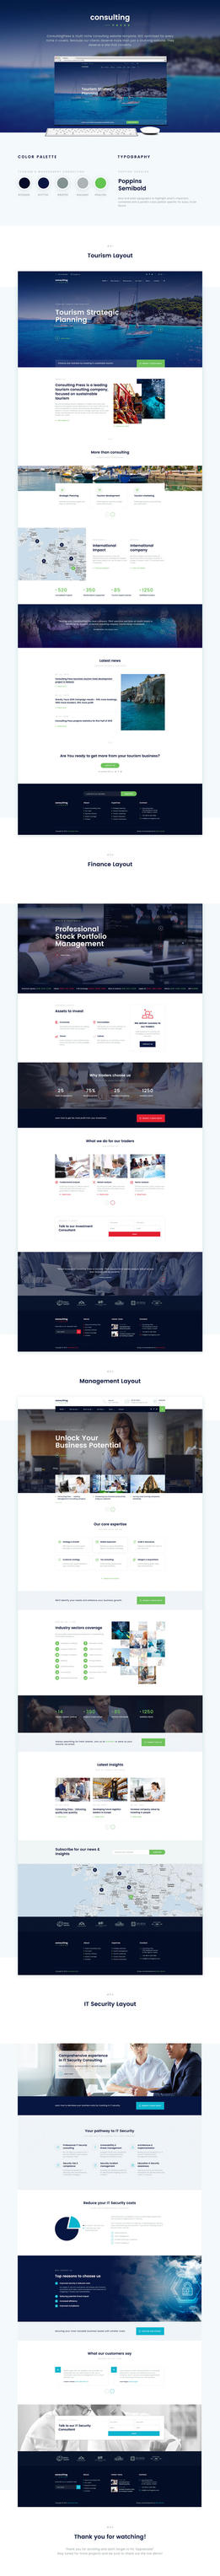 ConsultingPress Multiniche Consulting Website by pixel-industry